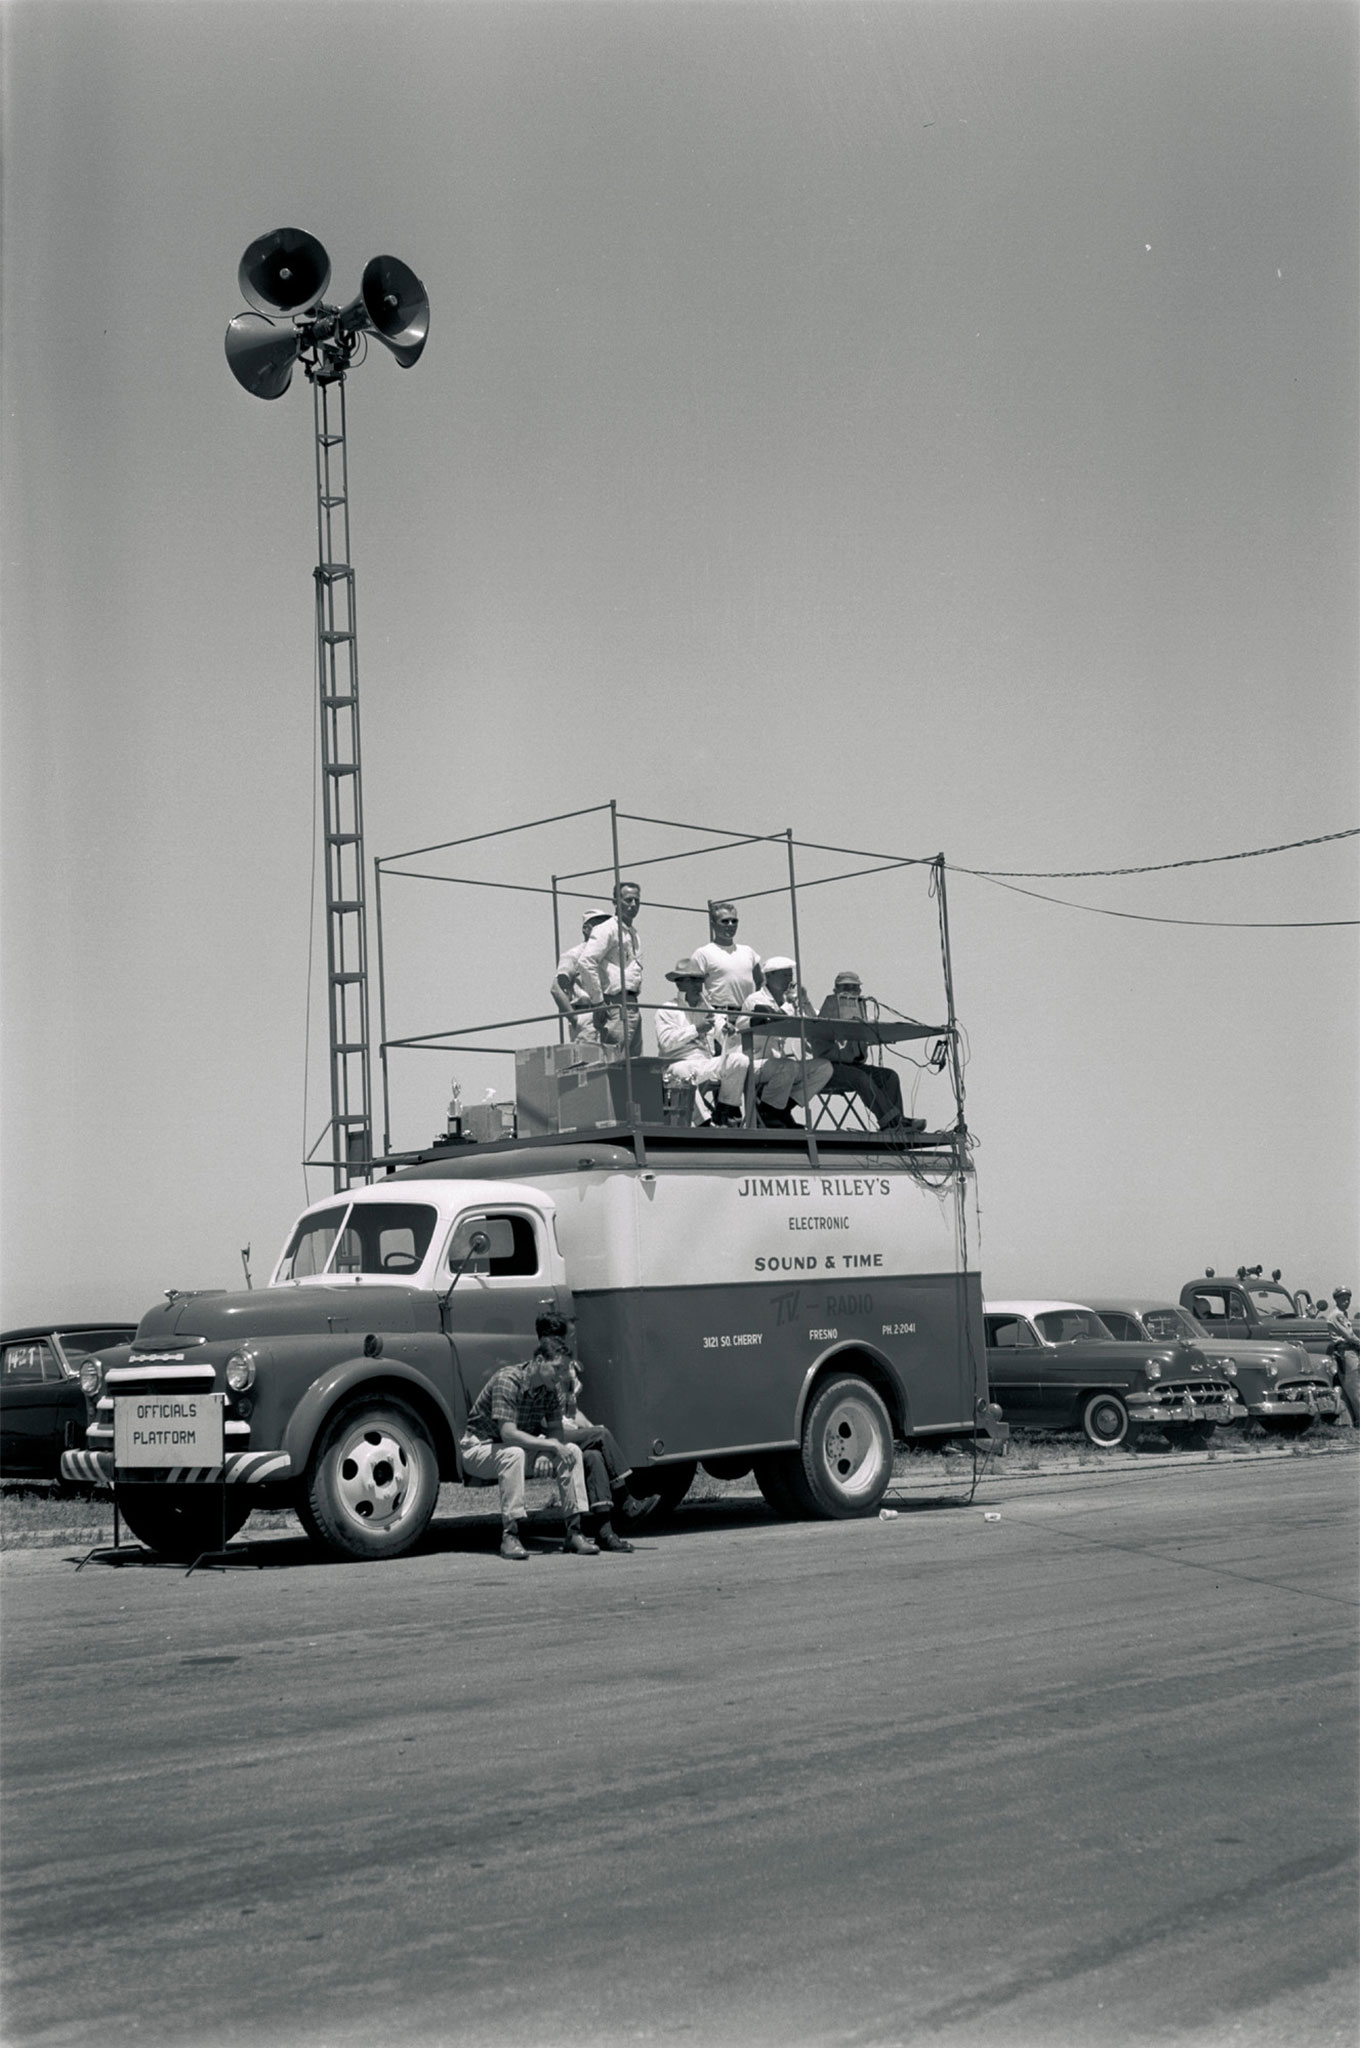 Behold state-of-the-art 1956 electronics. Jimmie Riley, a Fresno TV/radio technician, rolled into Madera (shown) and other temporary Central Valley tracks with complete timing and public-address systems.